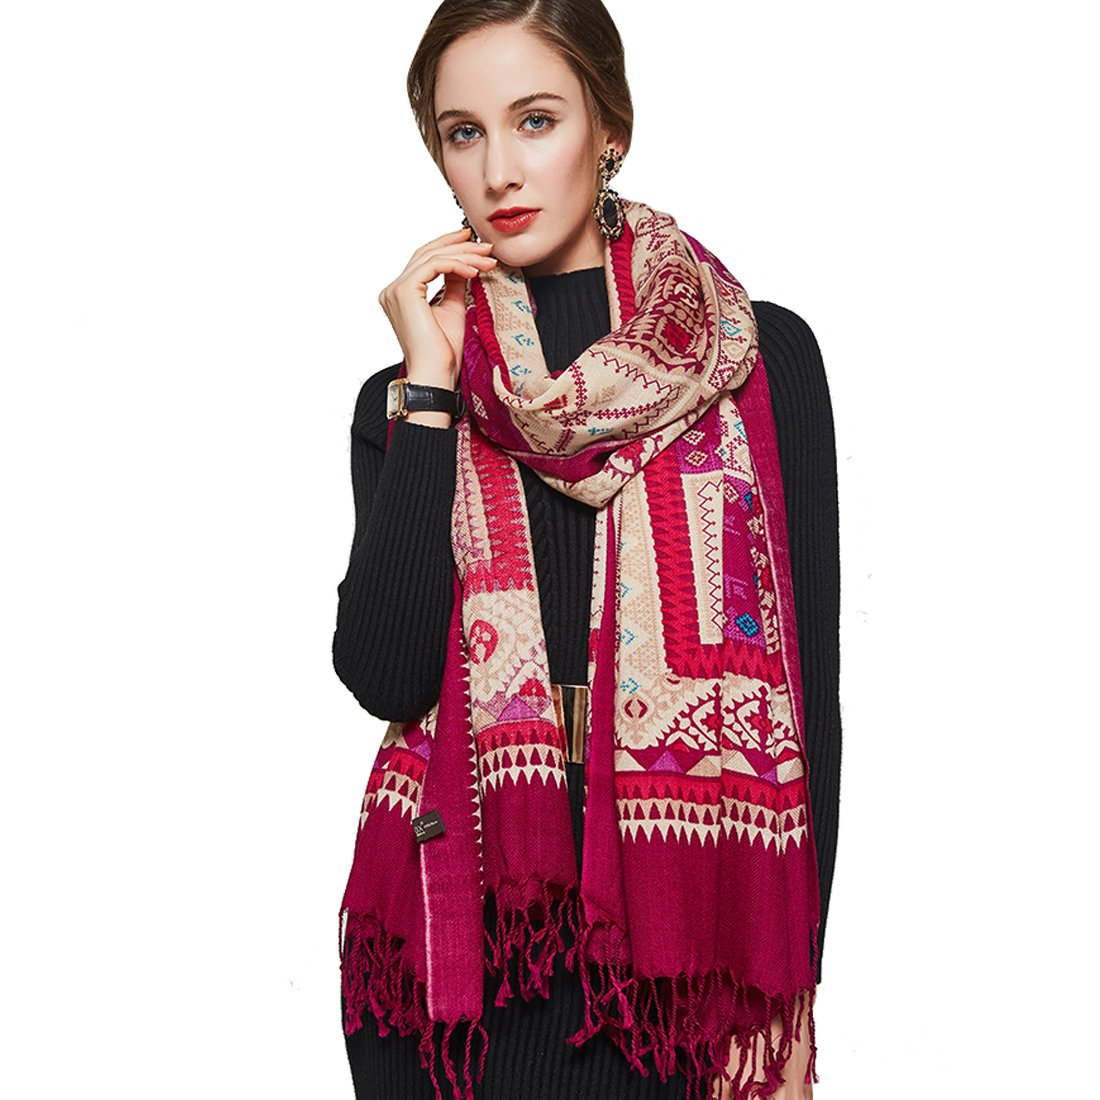 Red DANA XU Pure Wool Ponchos Blanket for Women Large Pashmina Shawls and Wraps (bluee&White)